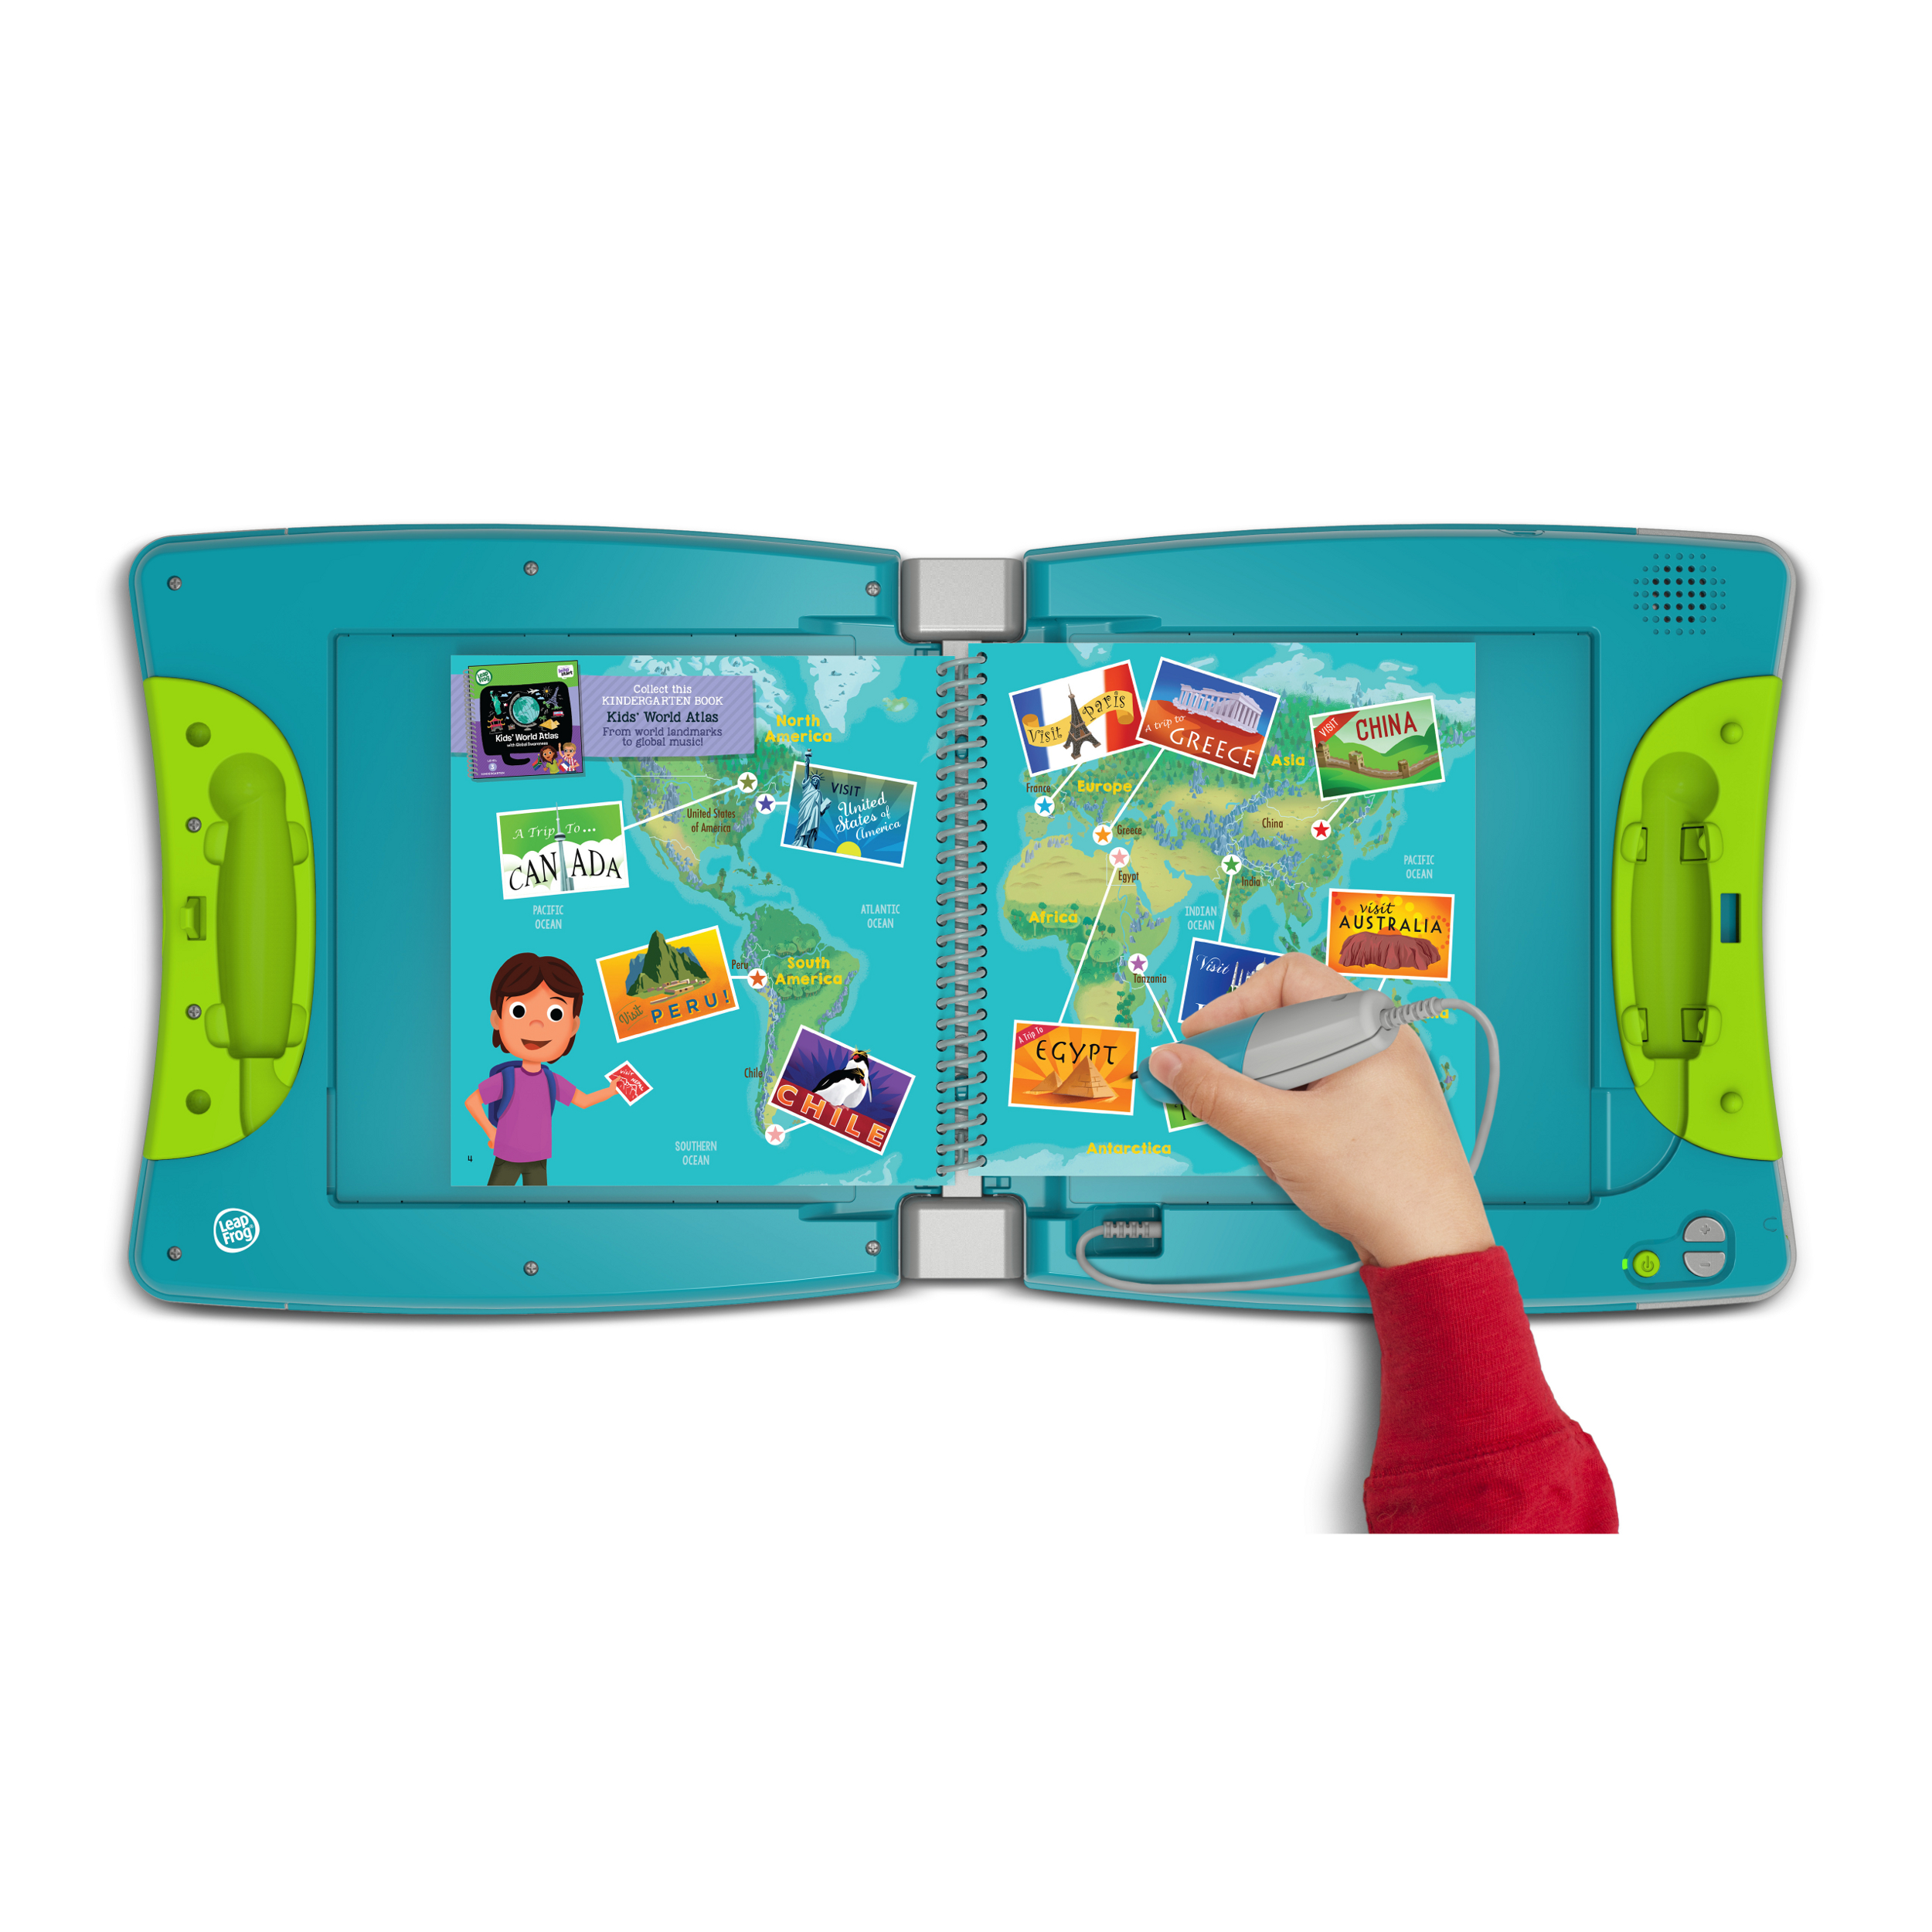 Leapfrog leapstart interactive learning system for kindergarten leapfrog leapstart interactive learning system for kindergarten and 1st grade gumiabroncs Gallery